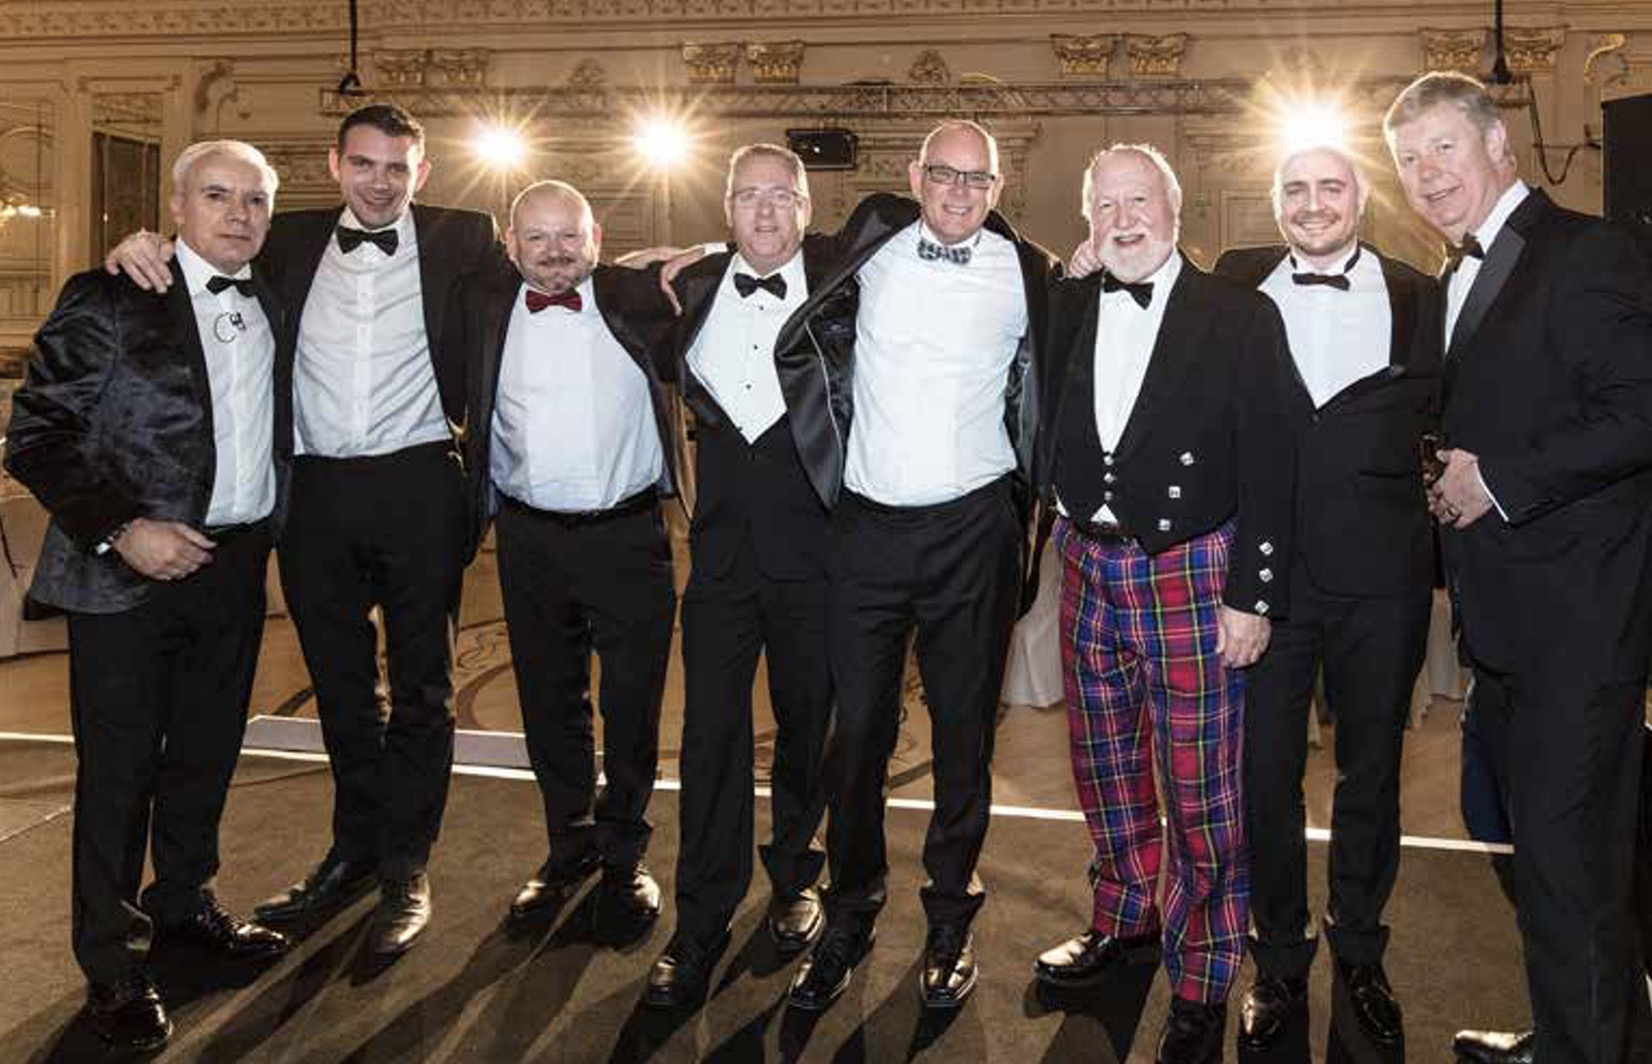 From left to right: Dale Wyatt - Suzuki director of automobile presenting the awards, Aaron Jameson - Border Cars, Phil Robinson - Hodgson, Martyn Evans - Builth Wells Garages, Stewart Cropley - Cropleys, David Pearson - Pearsons Suzuki, Matt Yeardley - Stoneacre Ackworth and after sales director Denis Houston